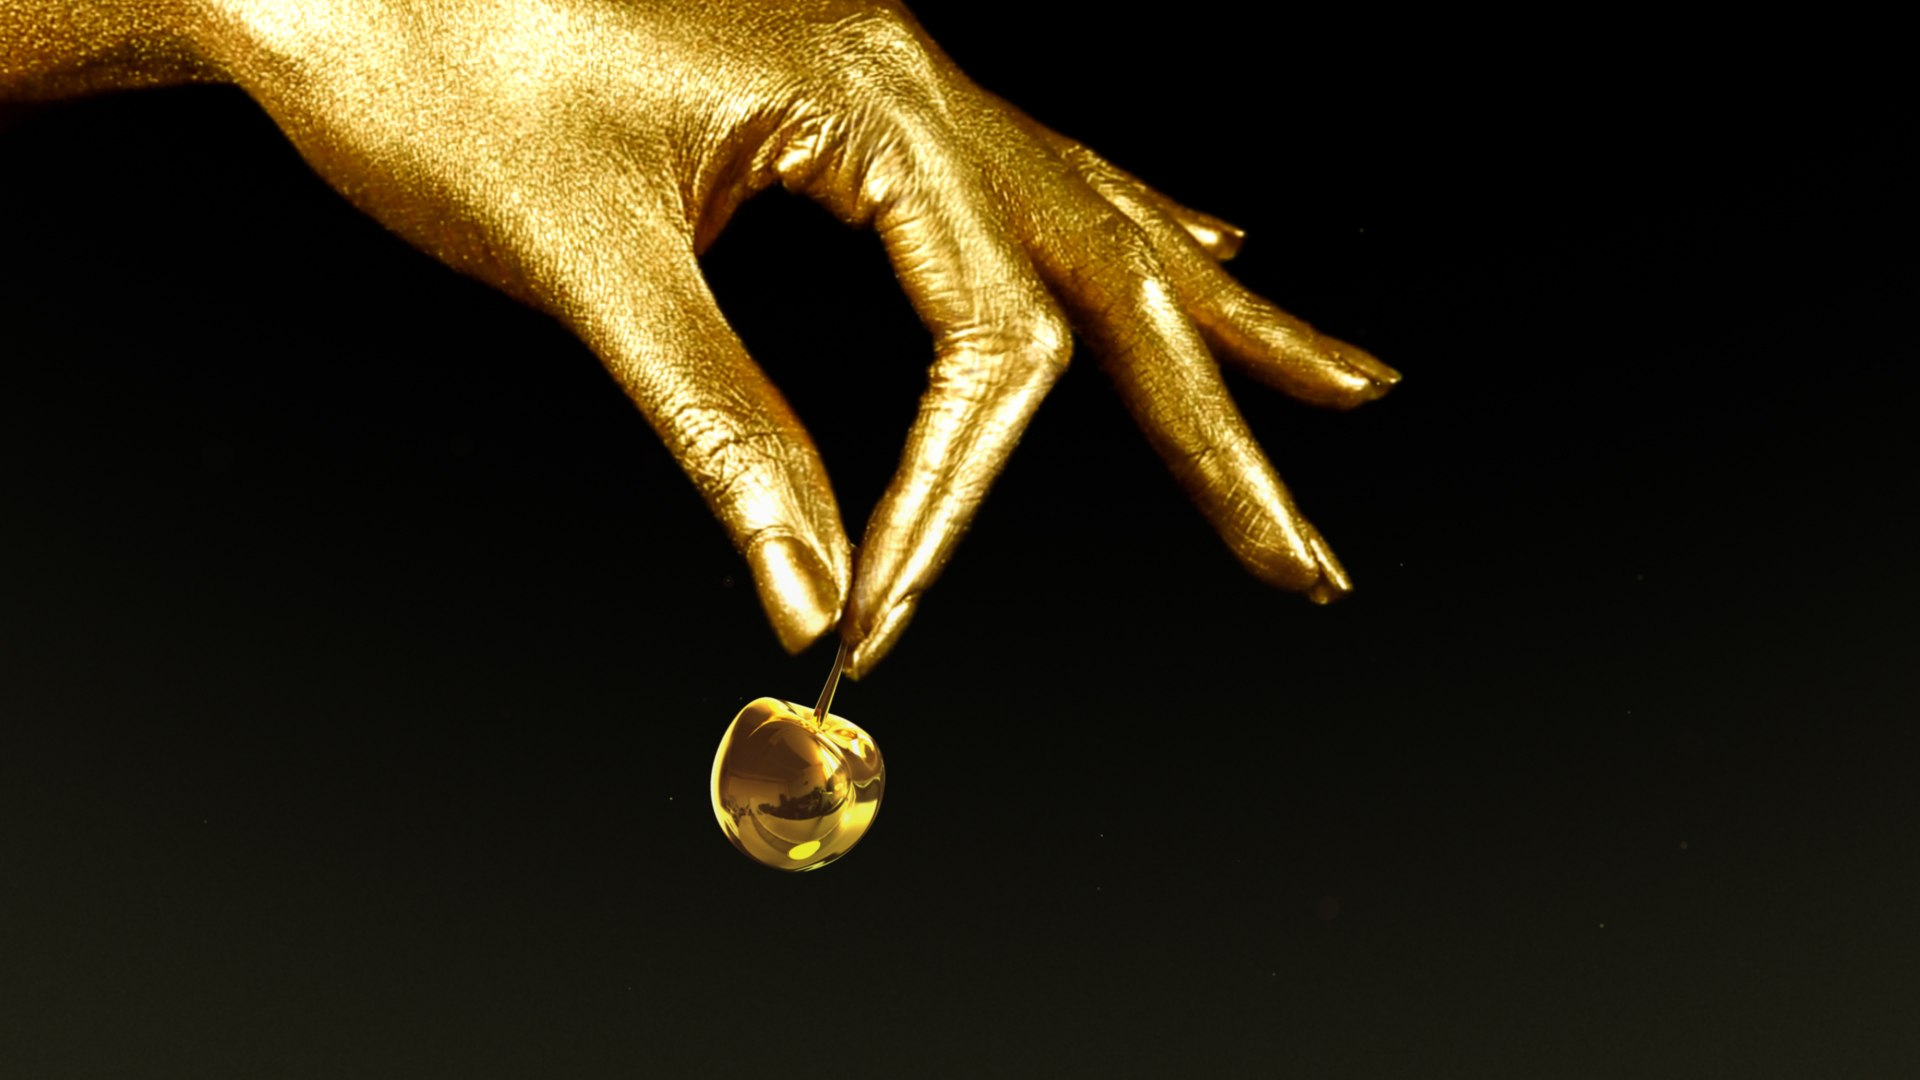 midat gold juice Finally and fully, the vital juices of the vine having iready begun to  made the  golden calf], moses wondered 6roy tpttfdoq av& oarjq  very midat 1.